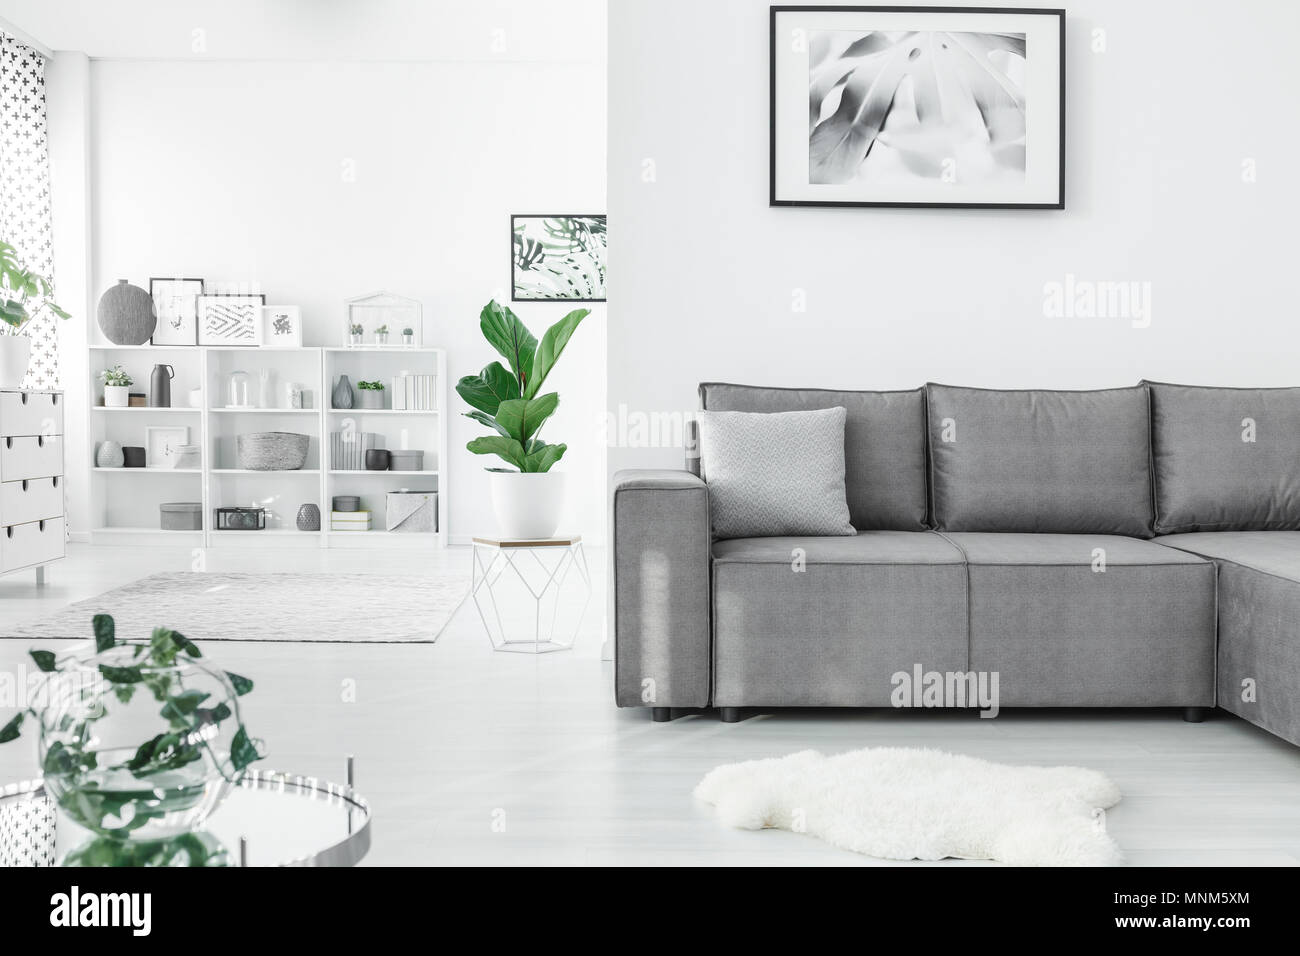 Corner sofa with shelf in the corner